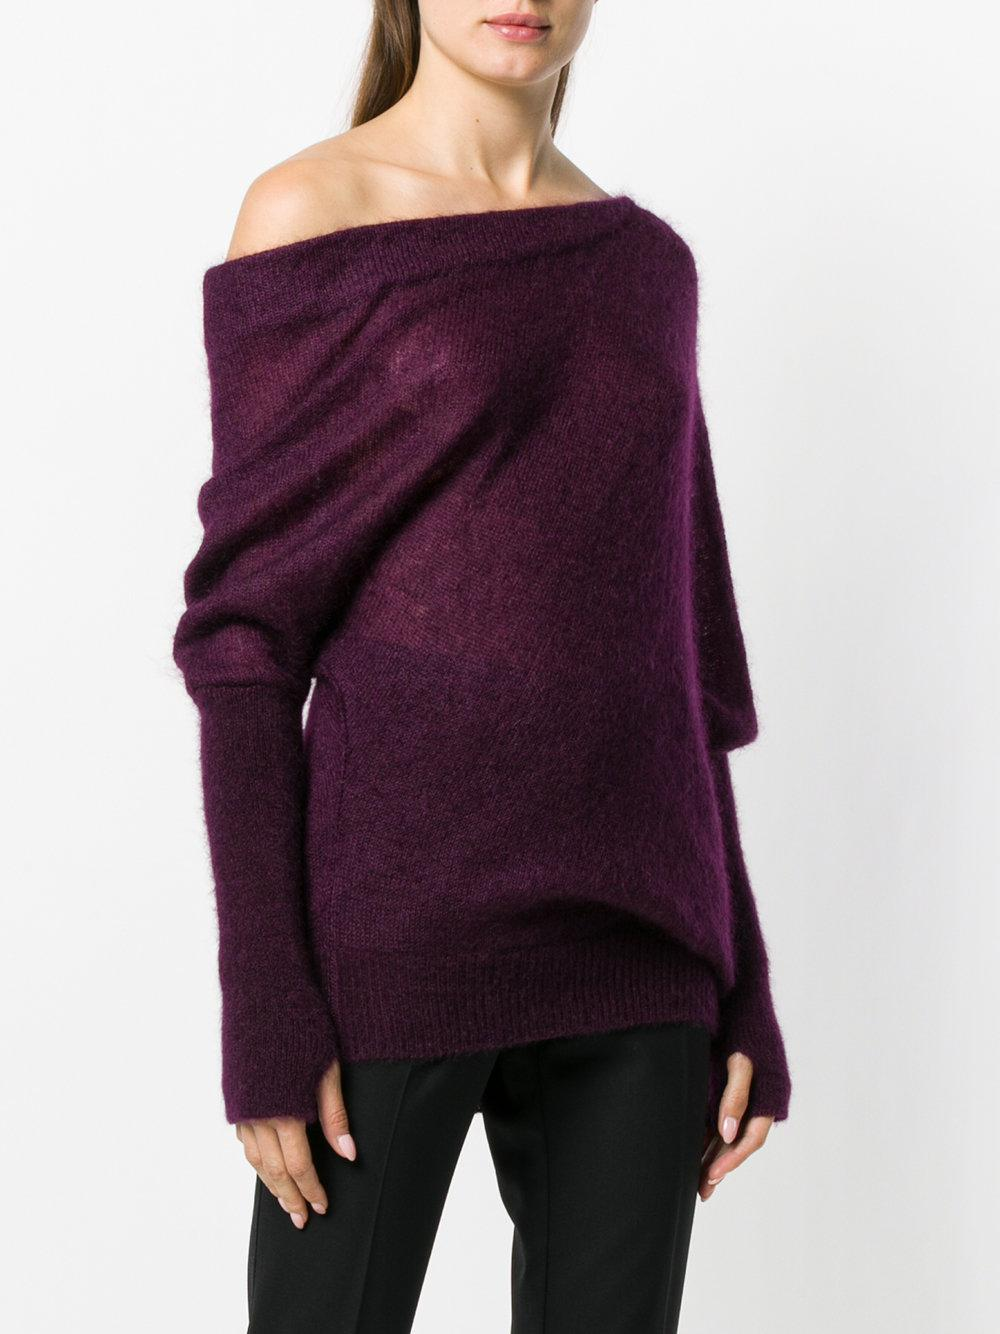 Tom Ford Cashmere One-shoulder Mohair-silk Sweater With Thumbholes in Pink & Purple (Purple)